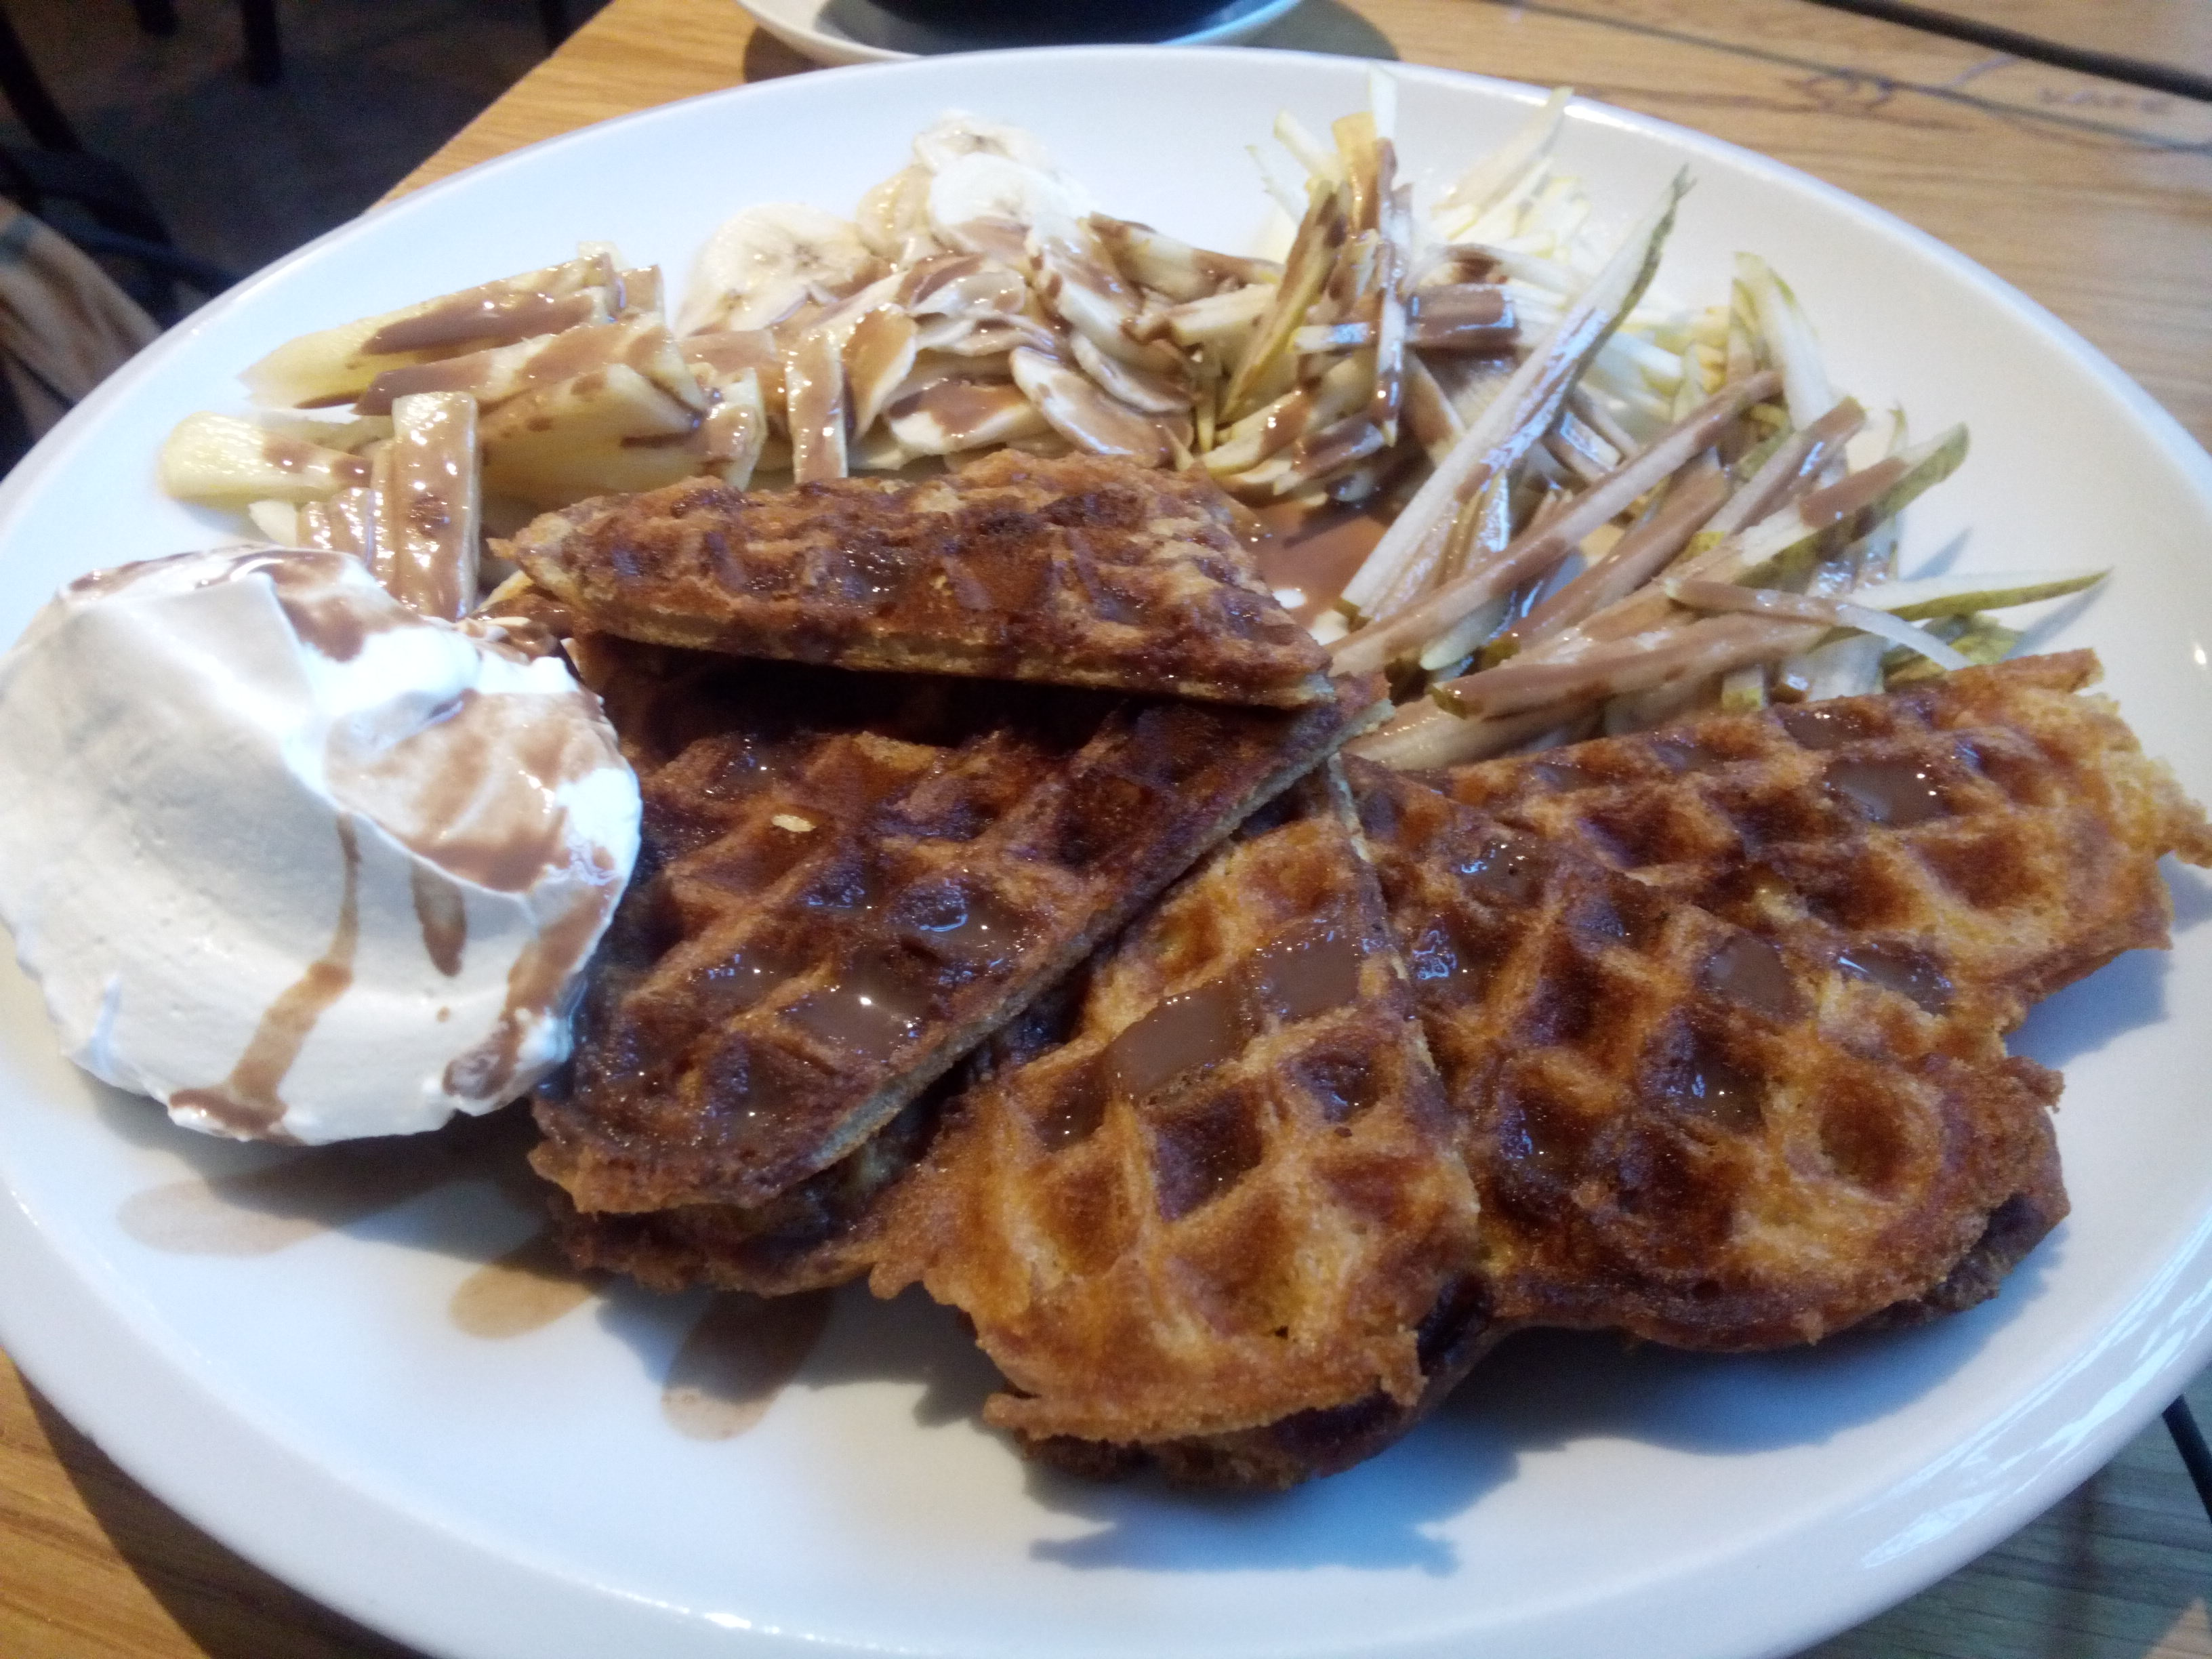 A white plate packed with waffles, cream, chopped apple and chocolate sauce